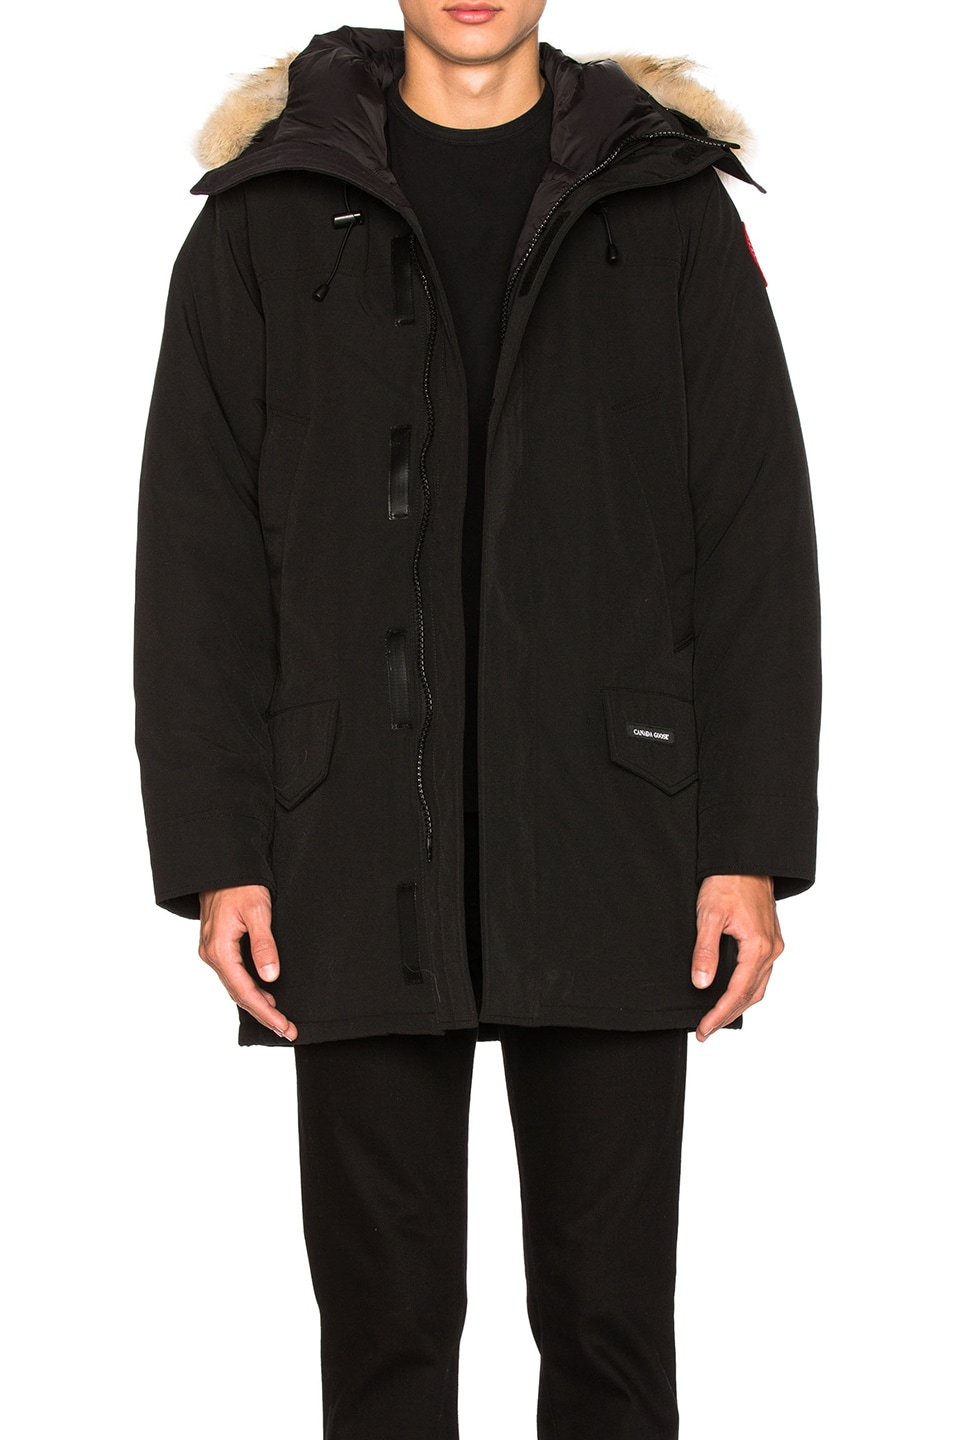 Image 1 of Canada Goose Langford Parka With Coyote Fur Trim in Black